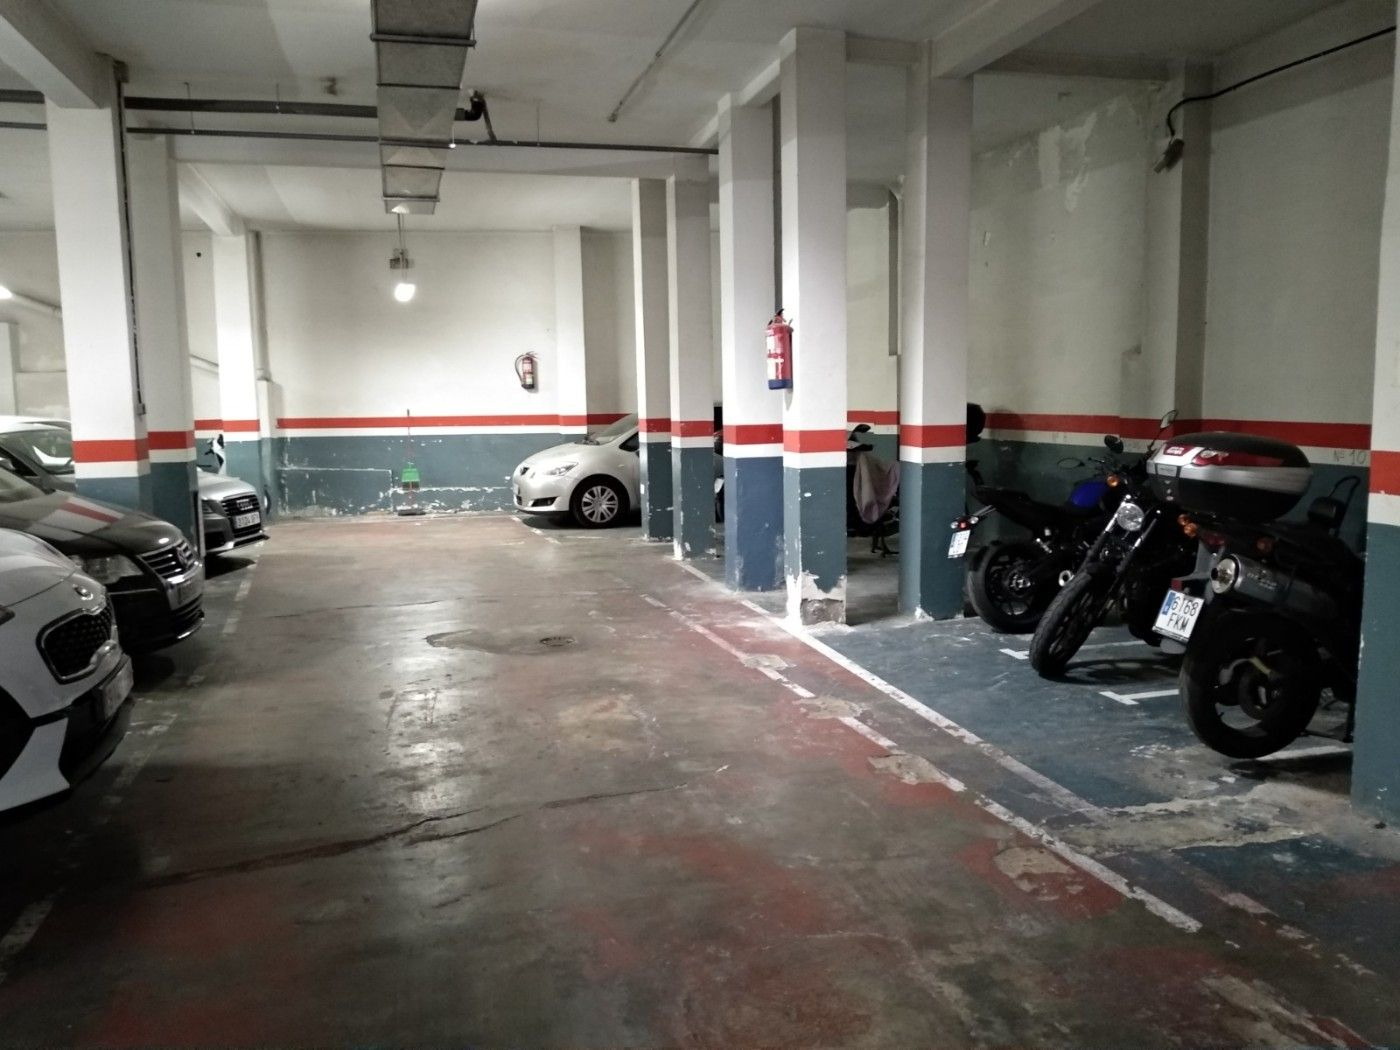 Motorcycle parking in Carrer arbos, 3. 13 plazas de moto grande